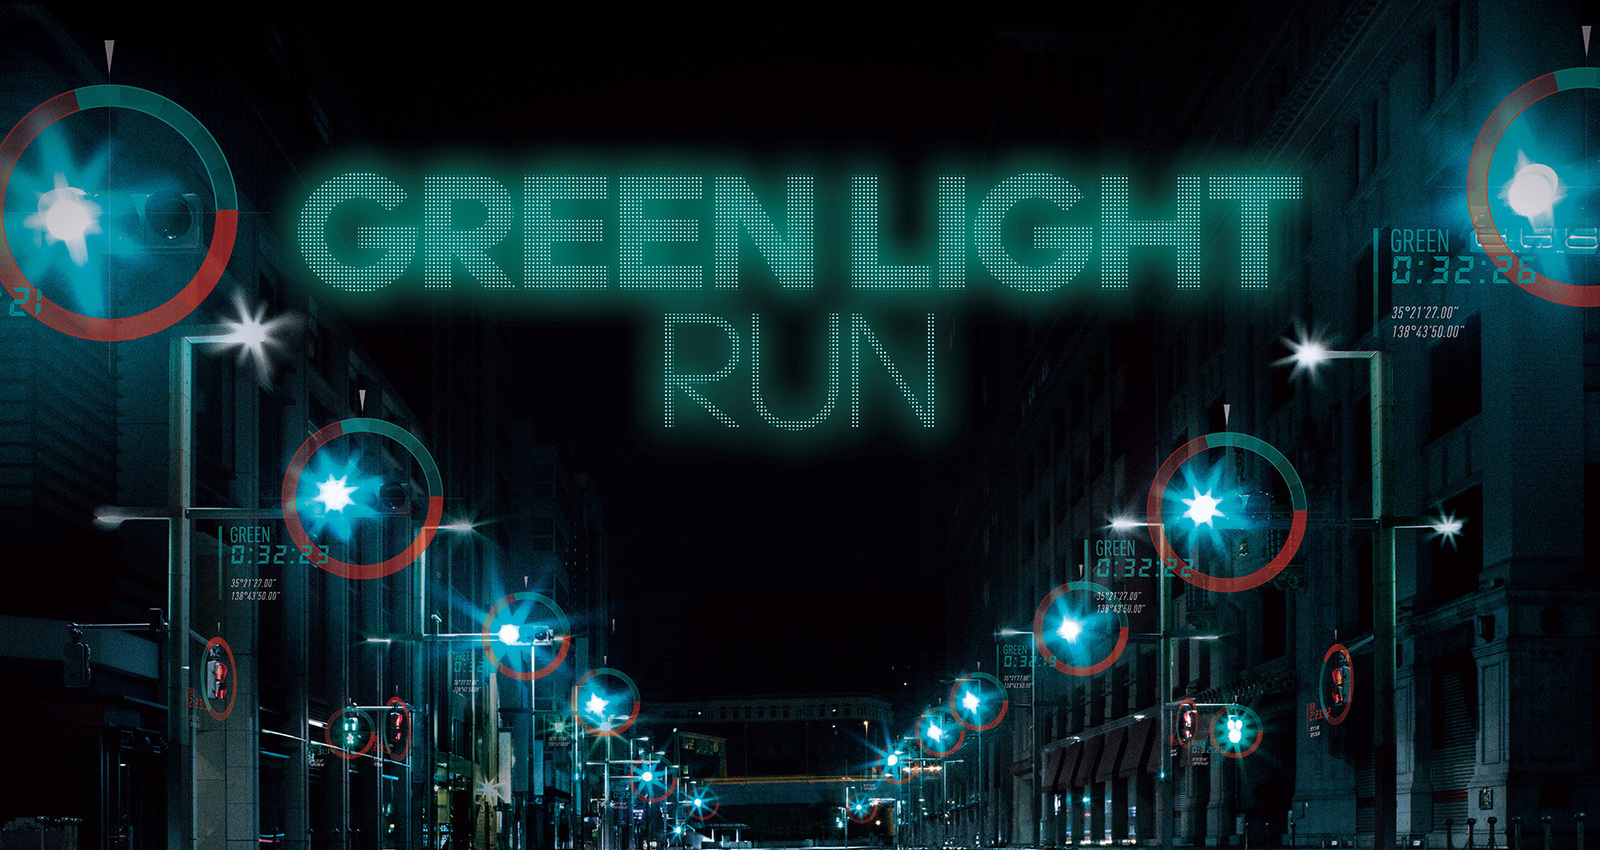 GREEN LIGHT RUN